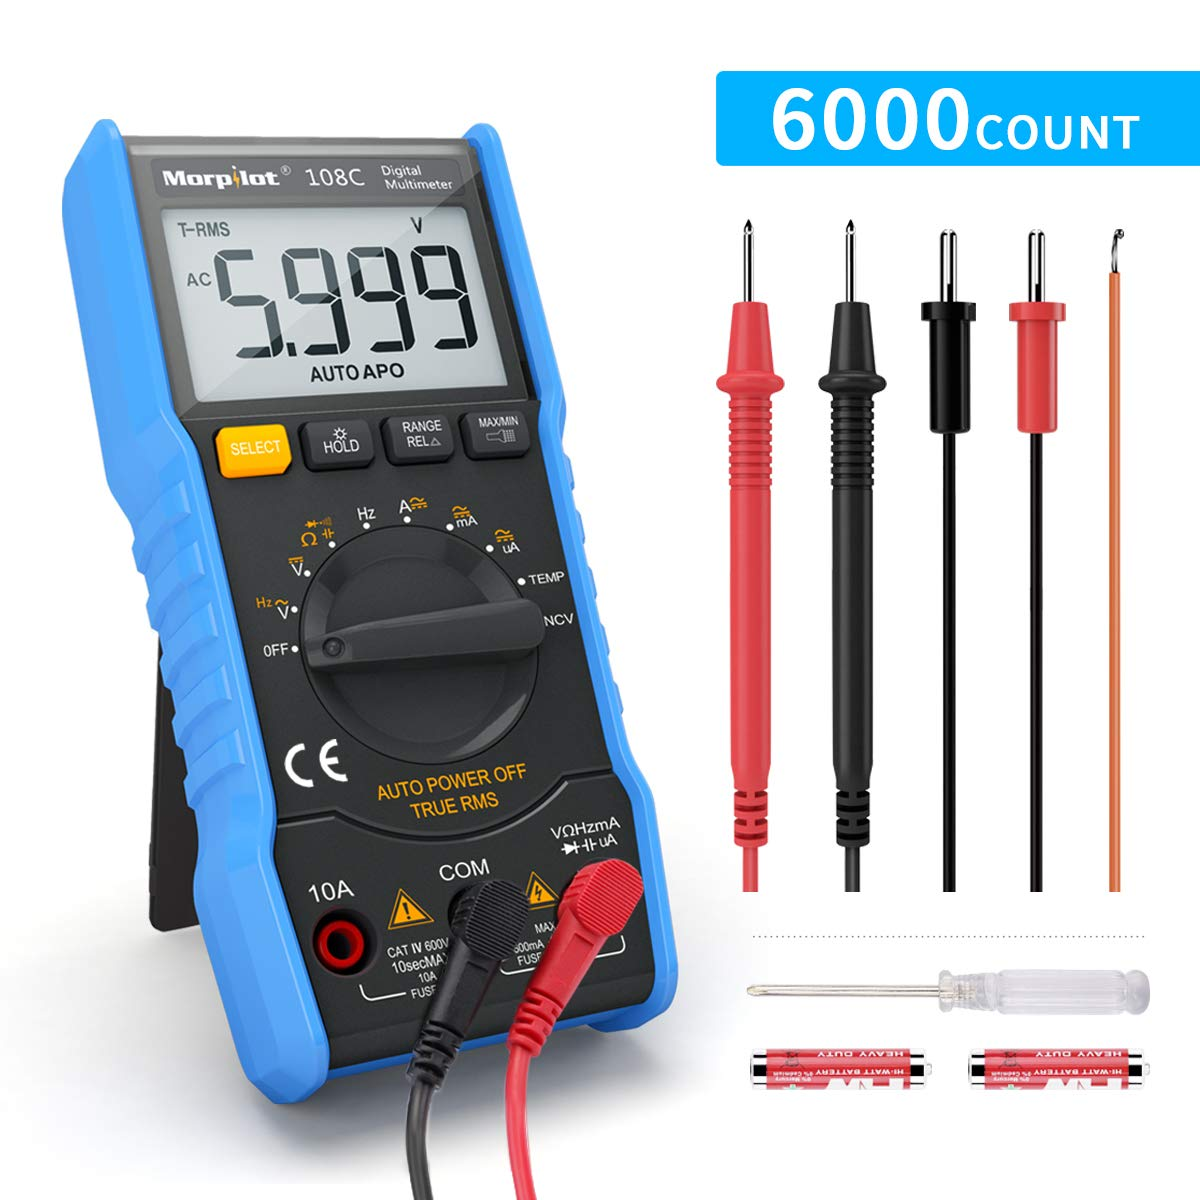 Great multimeter!